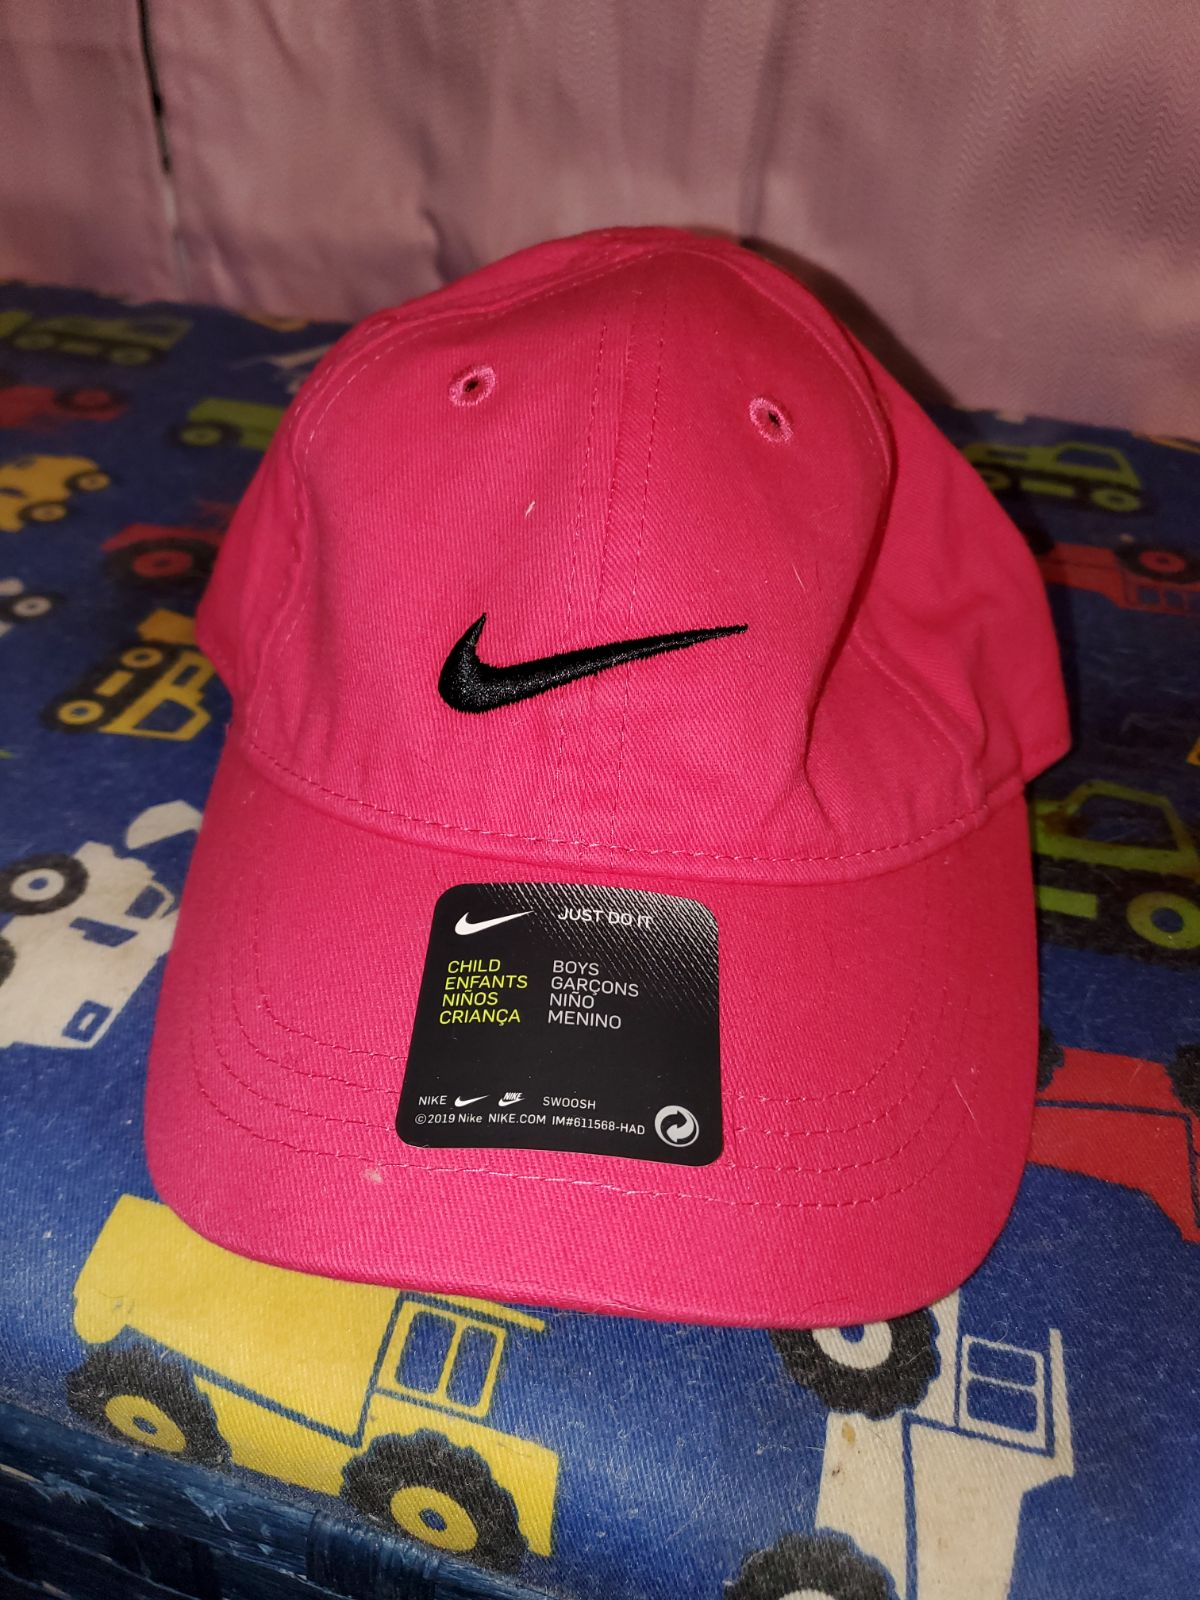 Nike Hat kids size new with tags